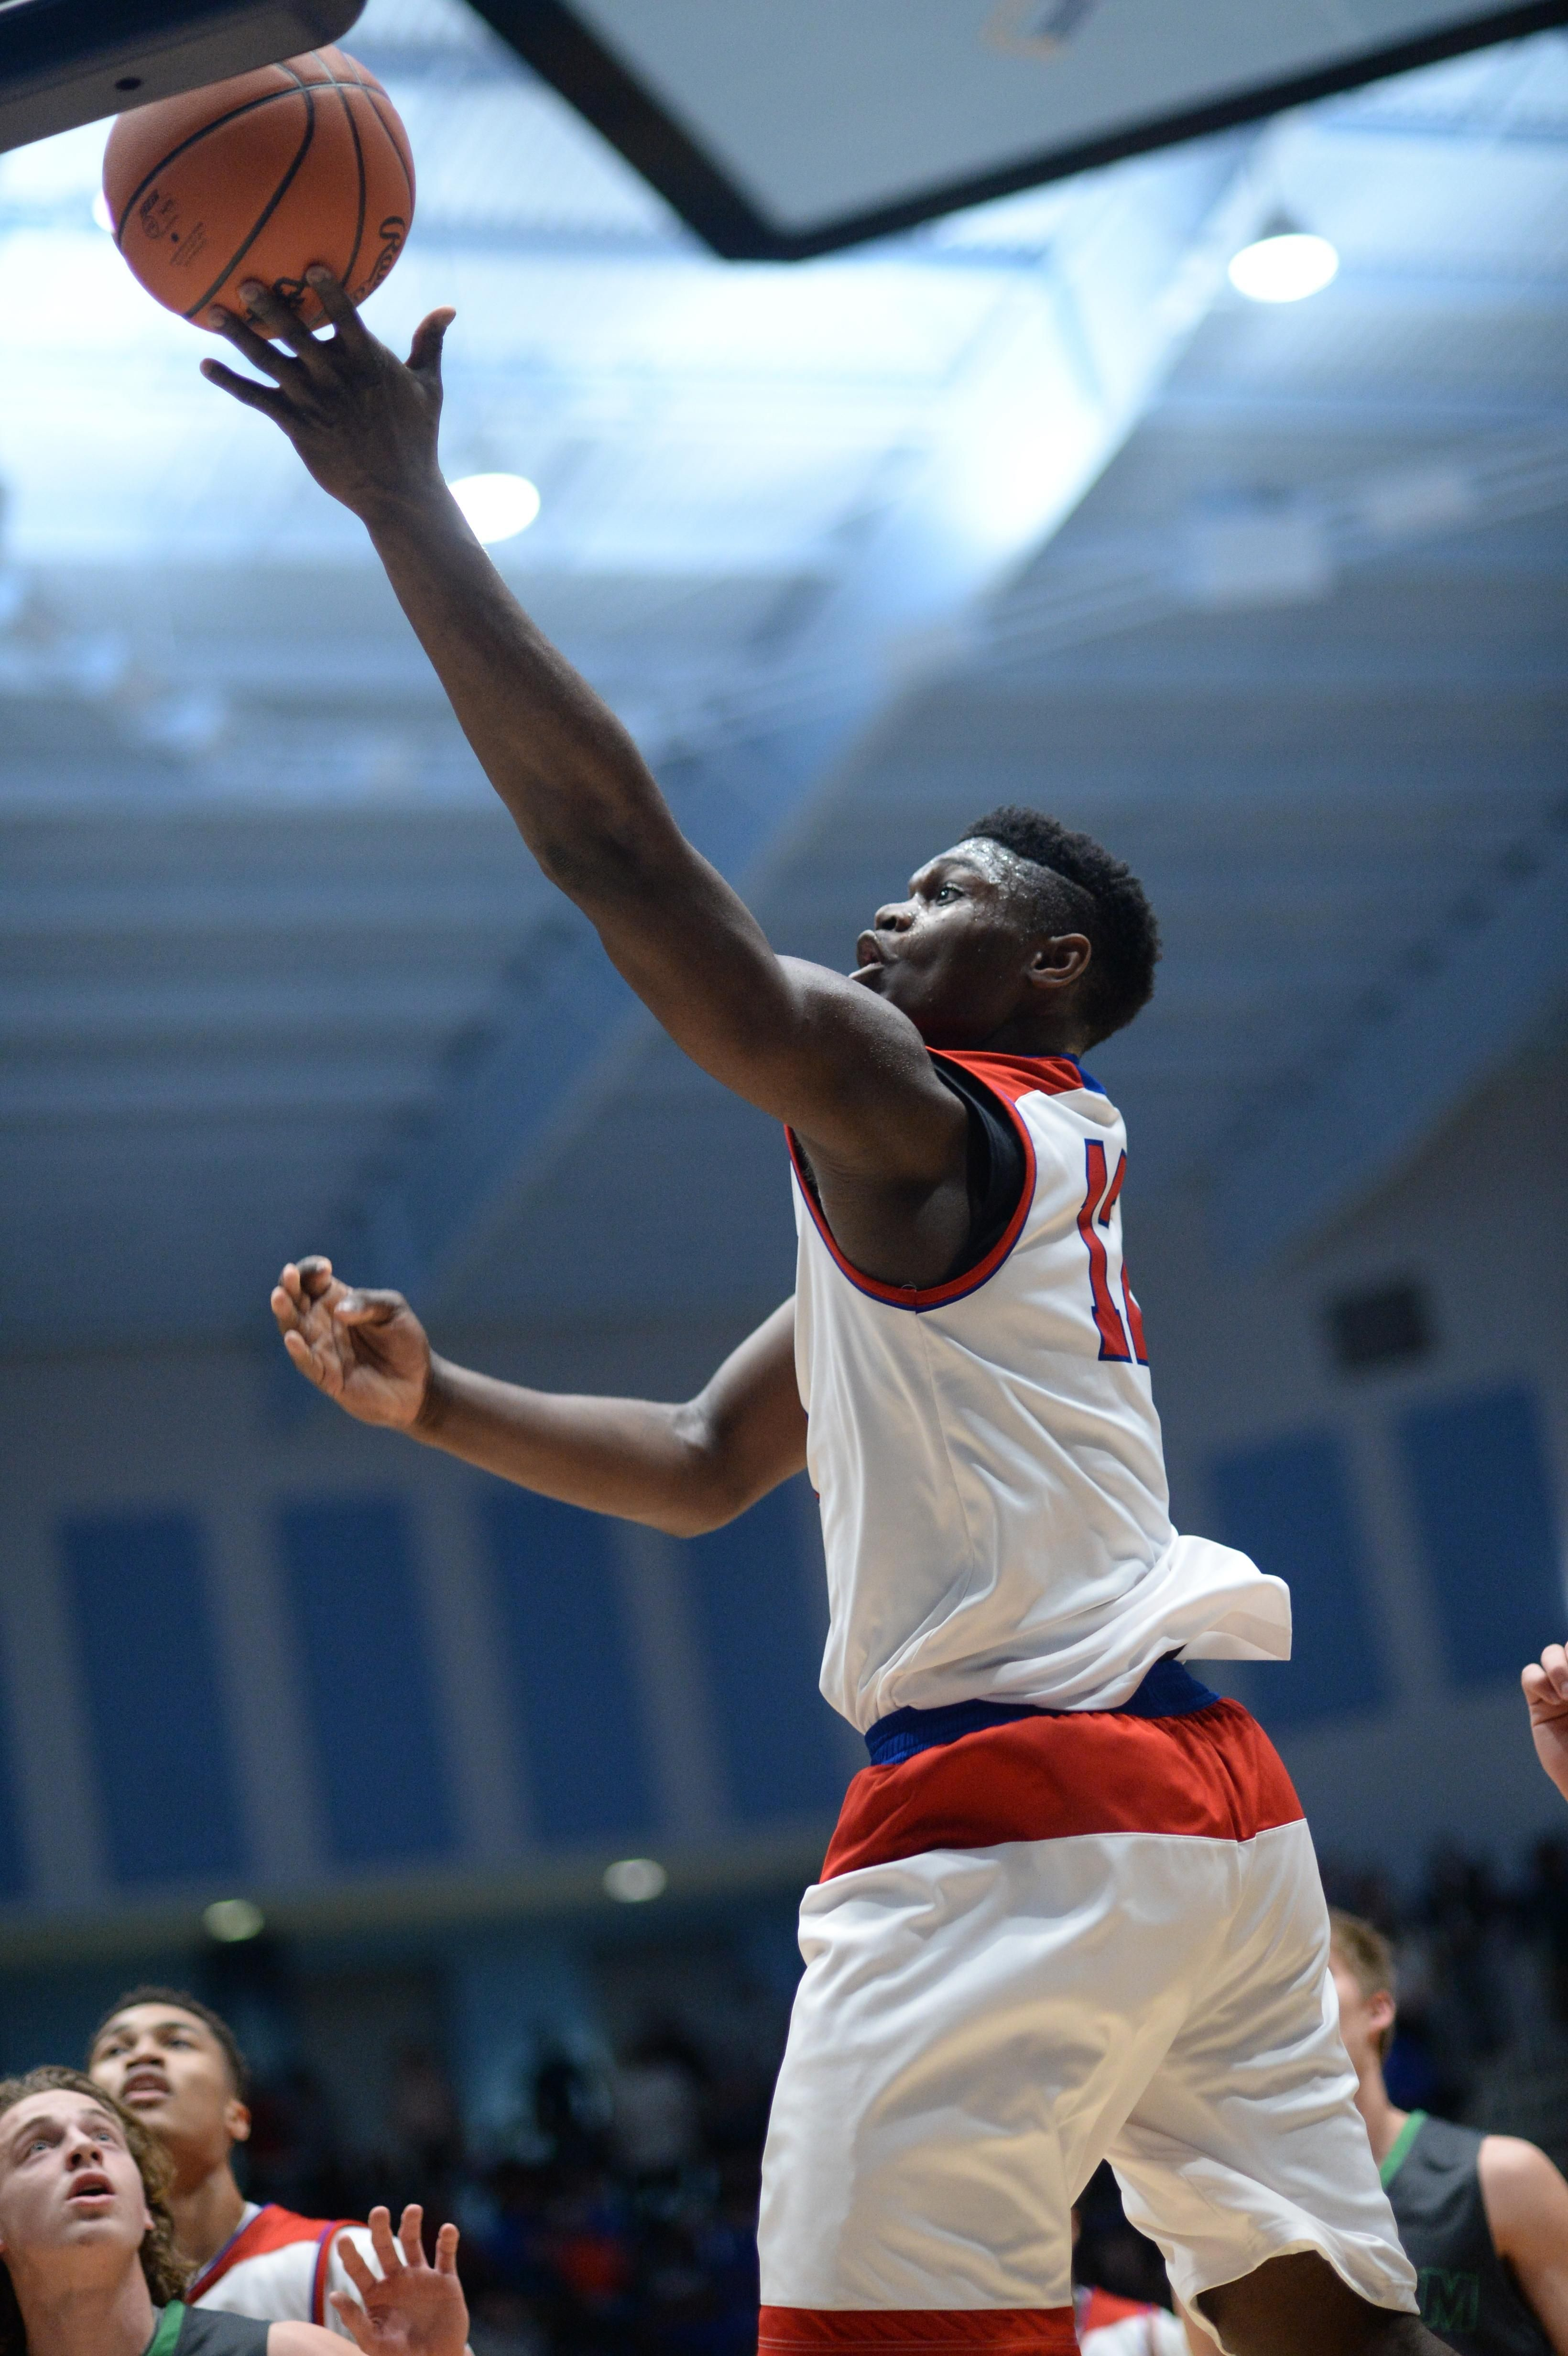 With popularity growing, Zion Williamson turns in show-stopping ...